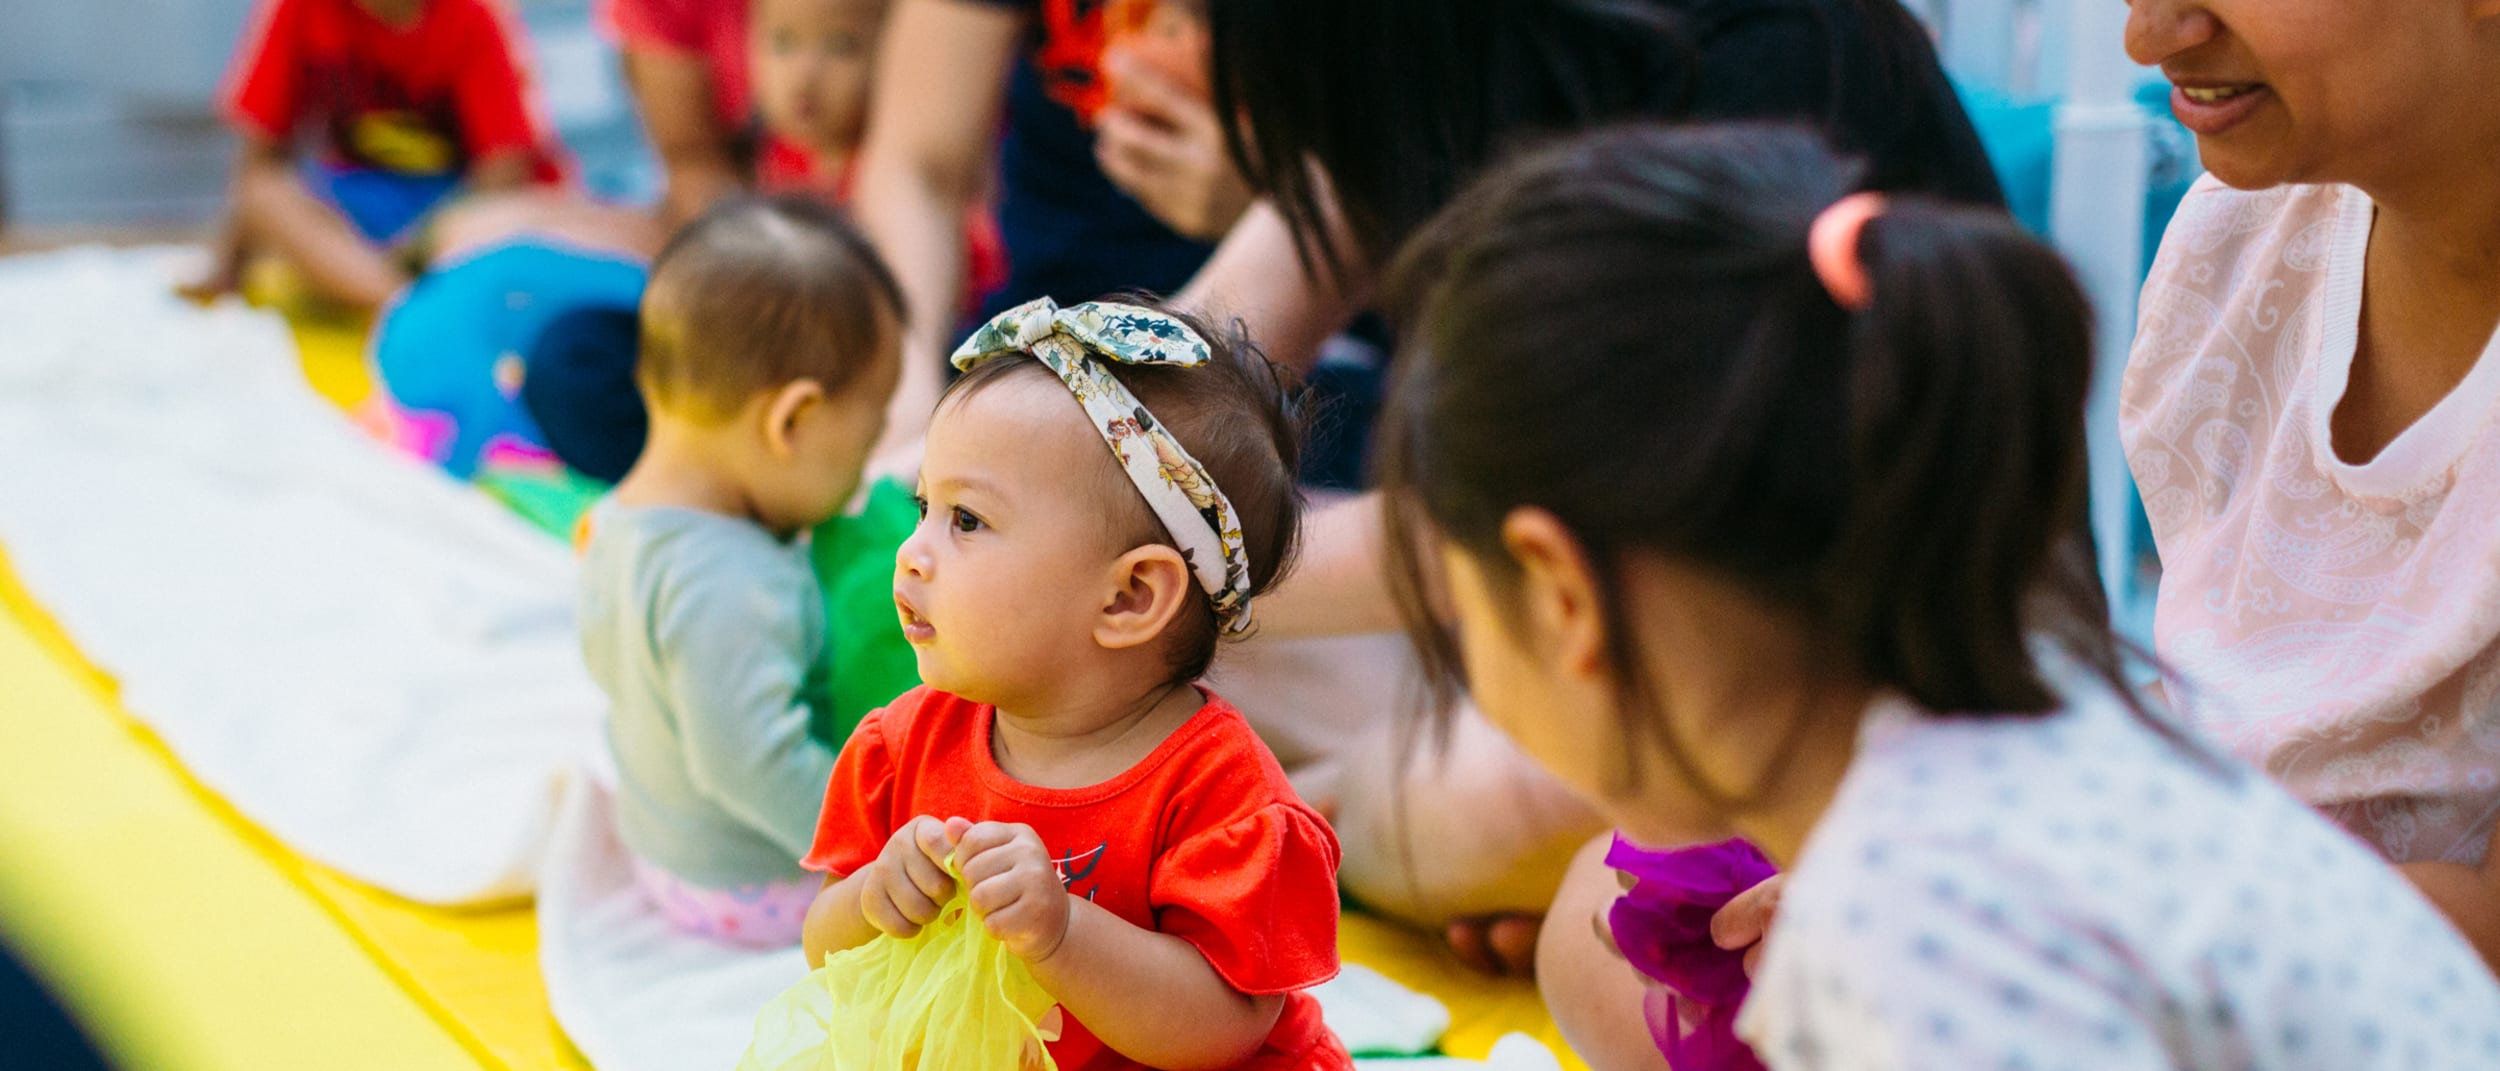 Little Wonders free mums and bubs classes